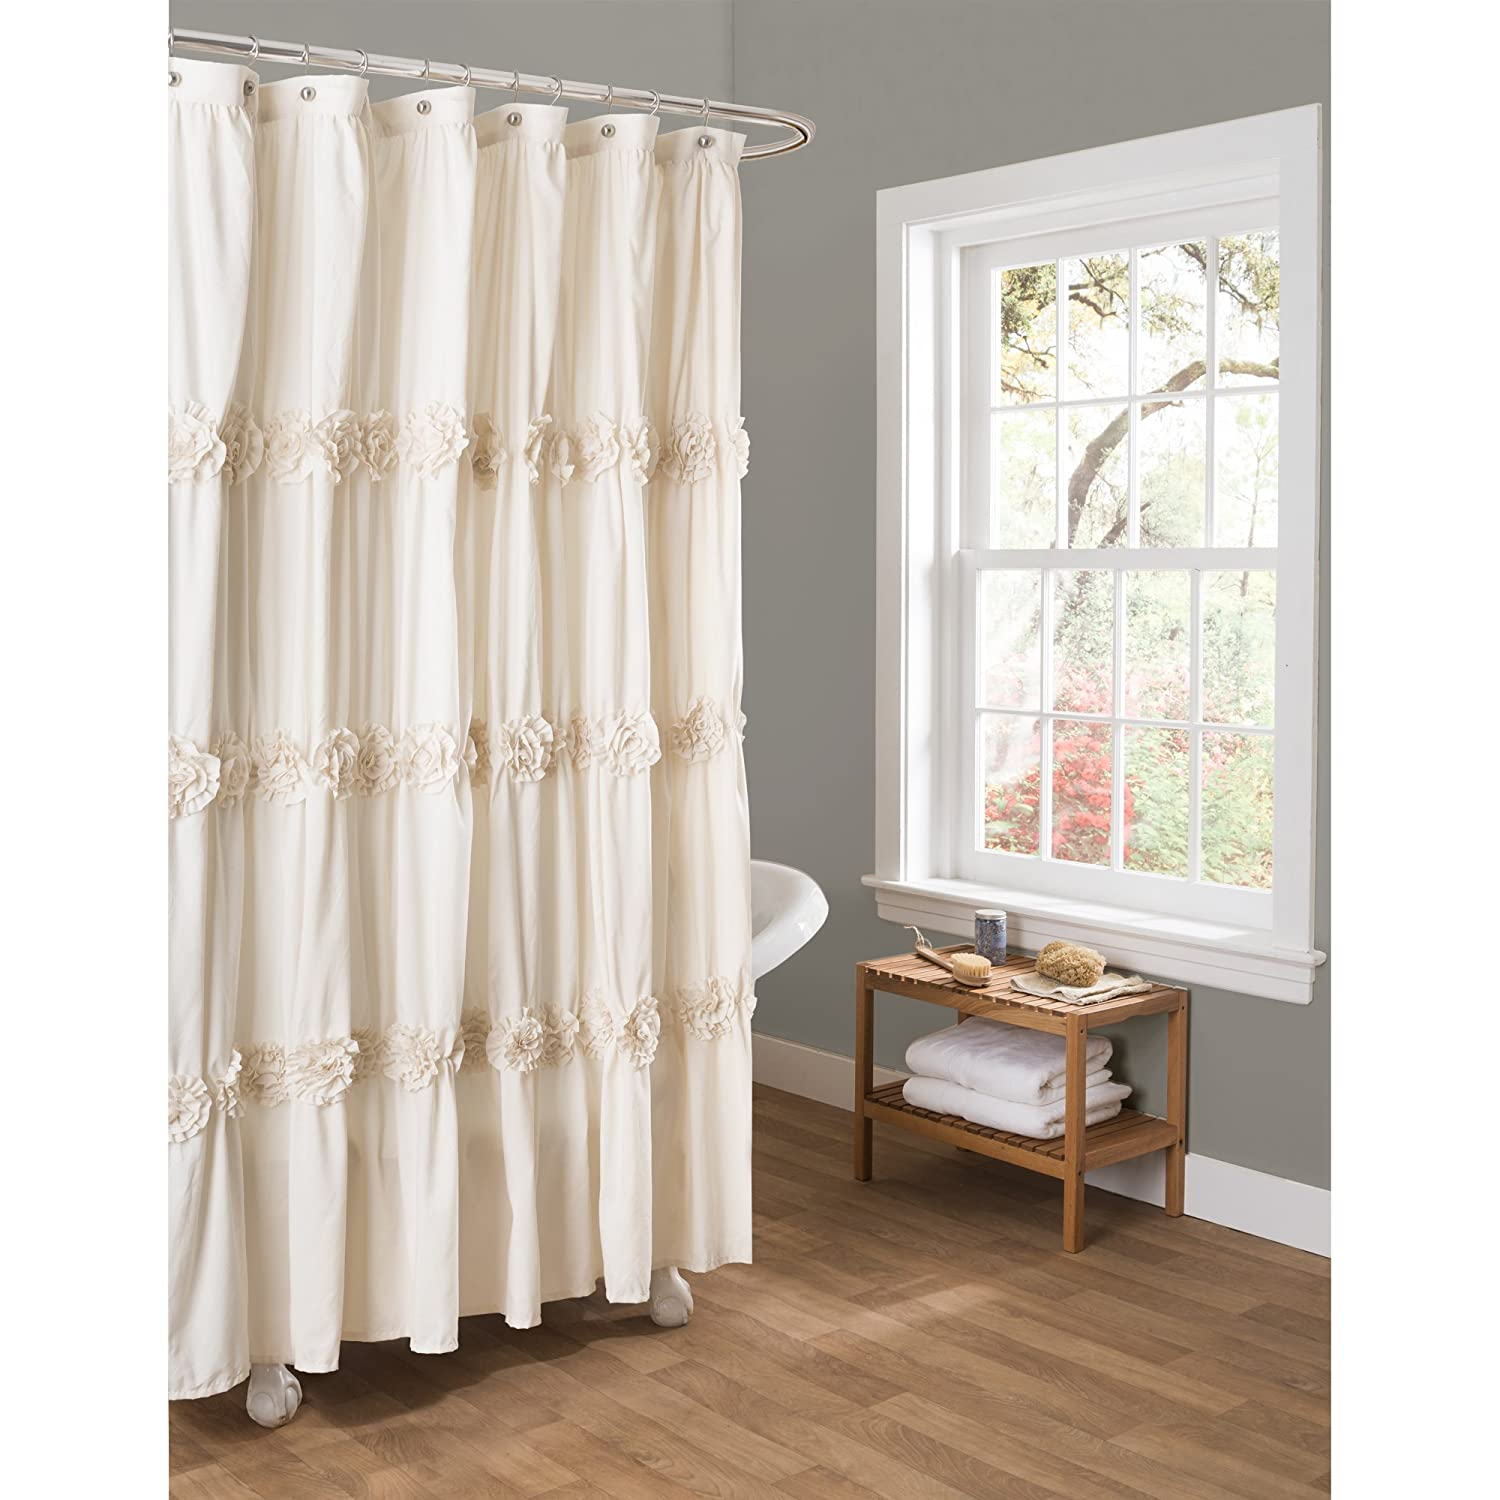 Amazon.com: Lush Decor Darla Shower Curtain, 72 By 72 Inch, Ivory: Home U0026  Kitchen